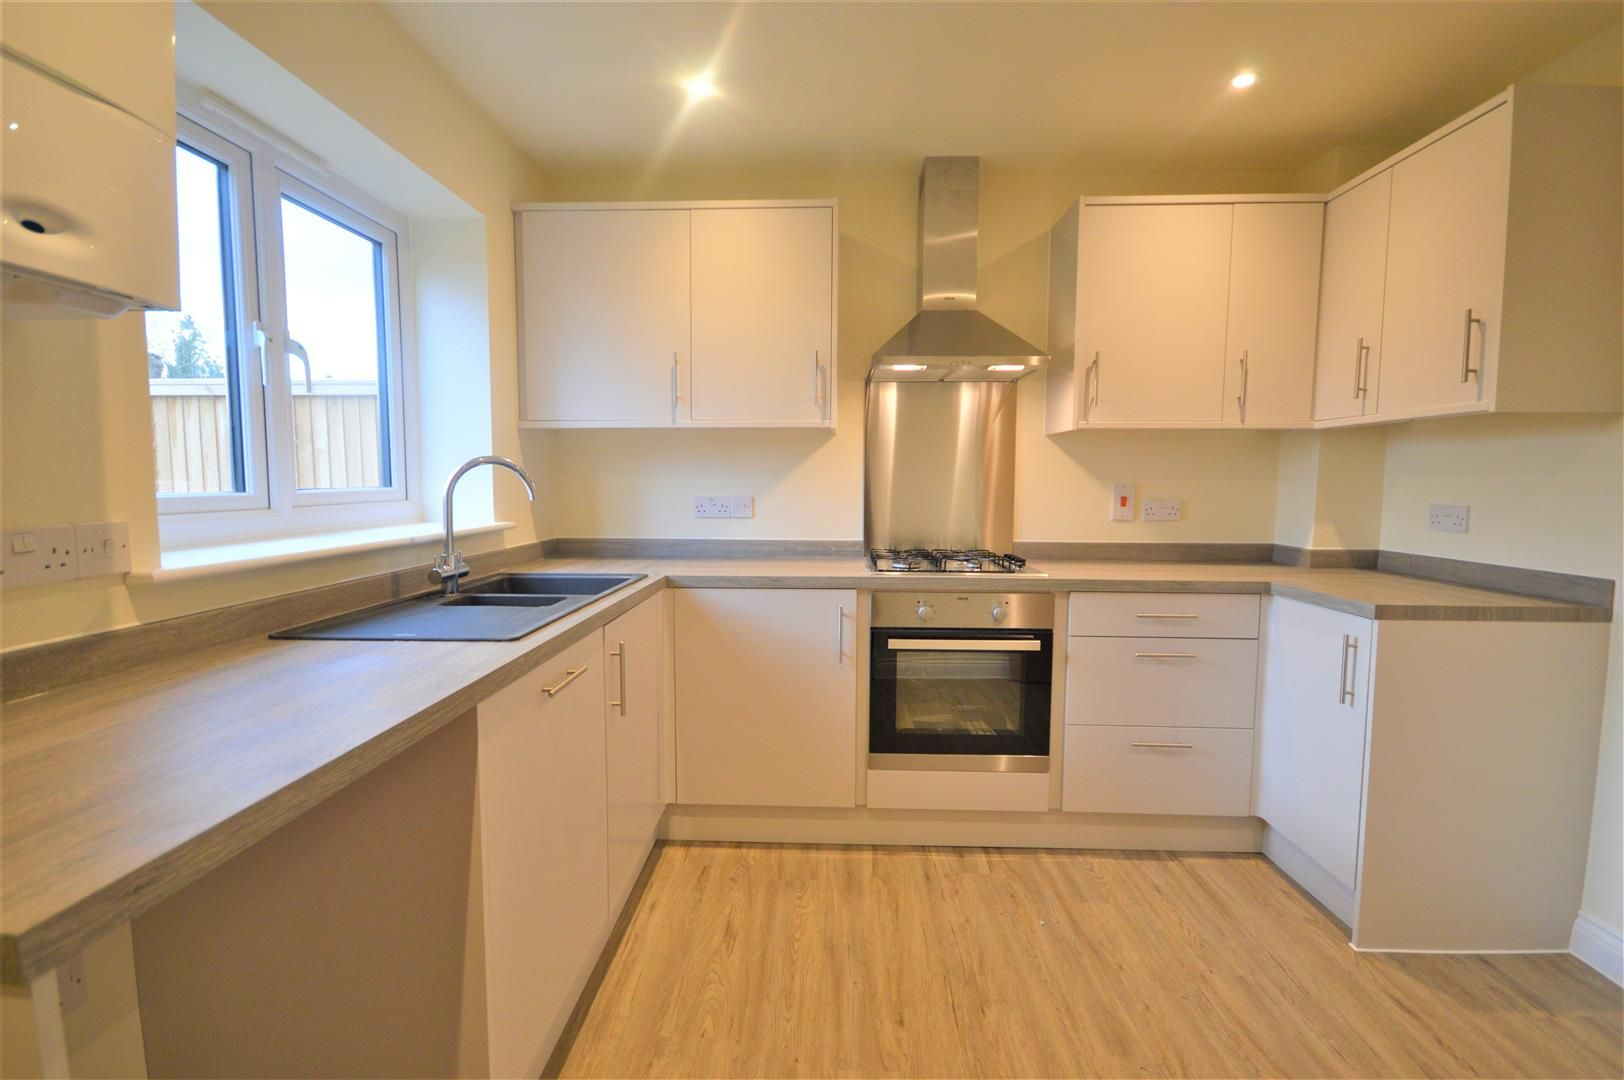 2 bed terraced for sale in Kingsland 2